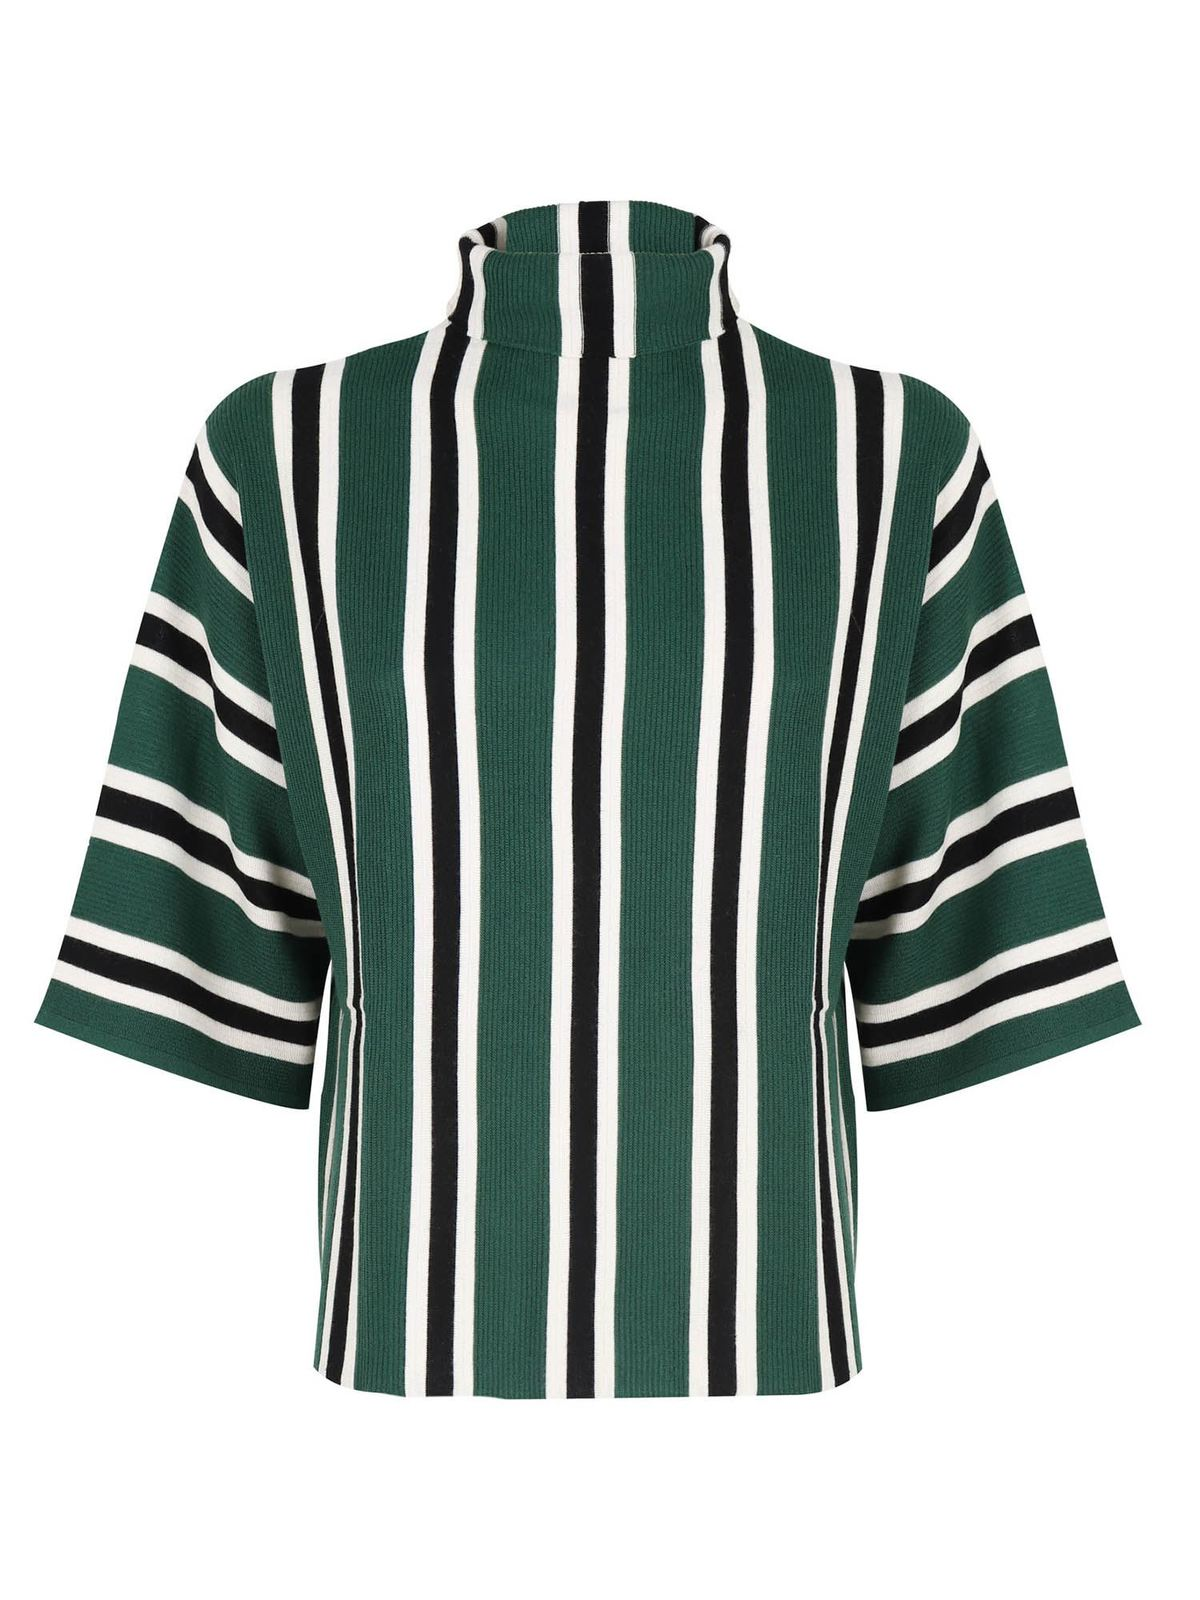 Aspesi STRIPED PATTERN T-SHIRT IN GREEN